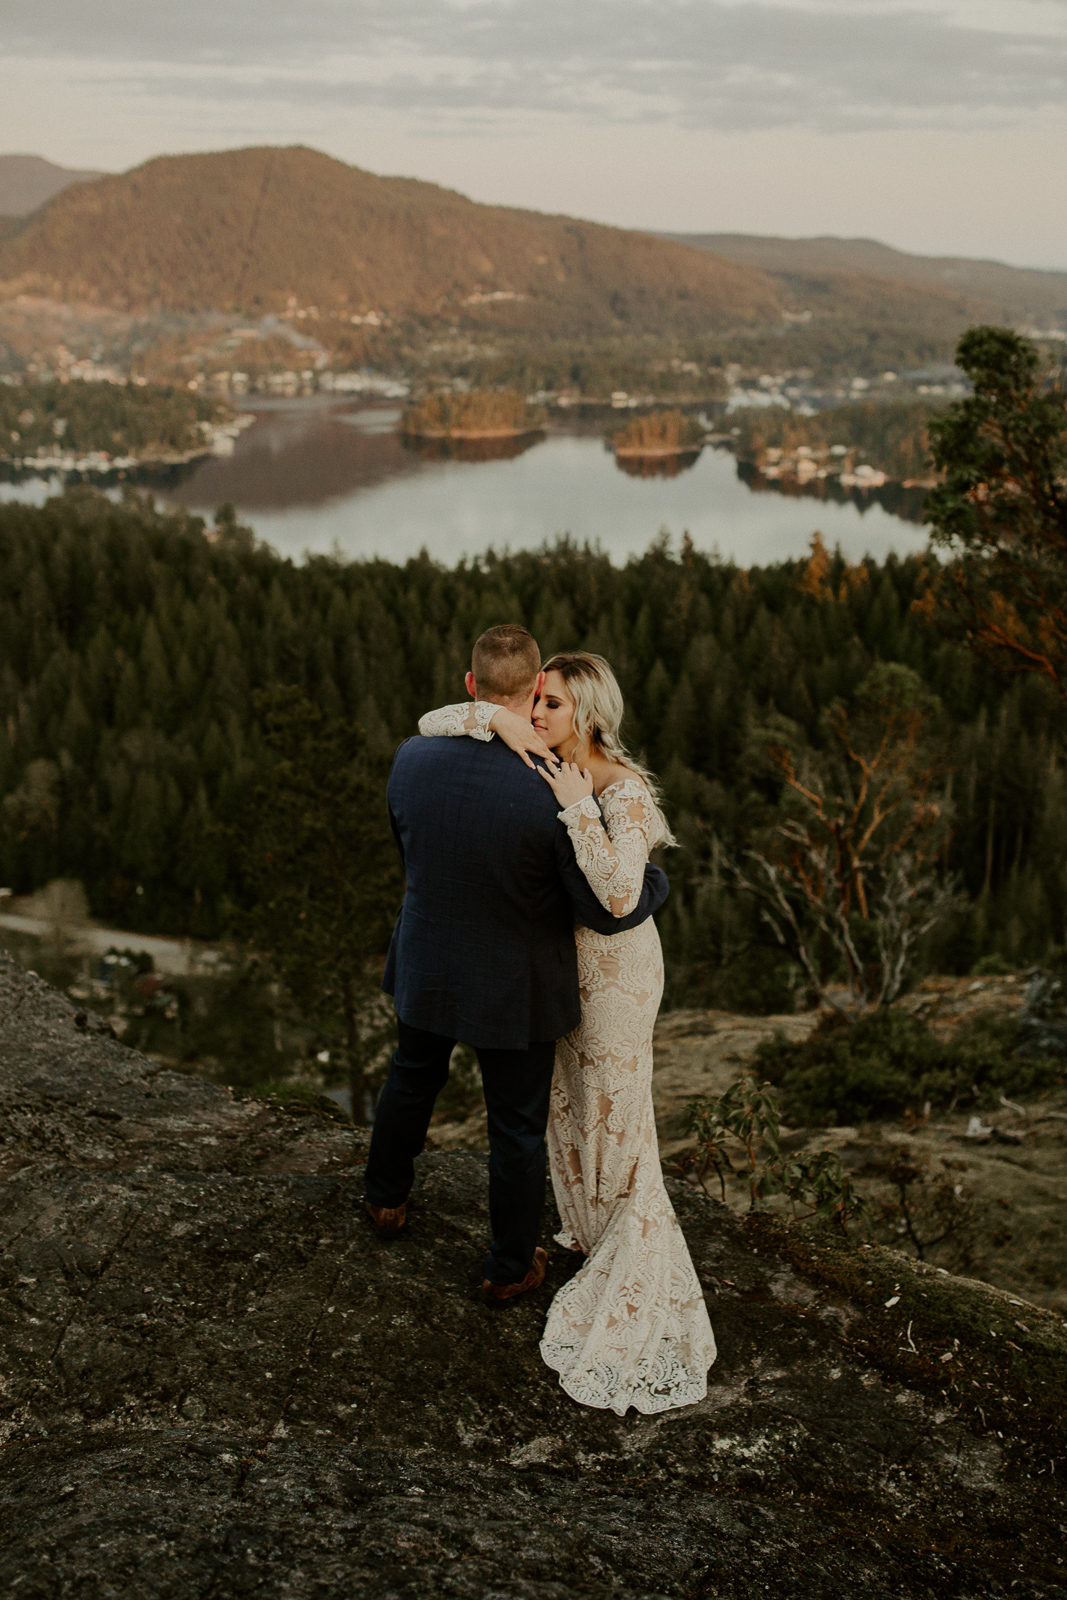 Luke Lambertson Photo_BritishColumbia_Canada_AdventurousCouple_Elopement_IMG-8546.jpg